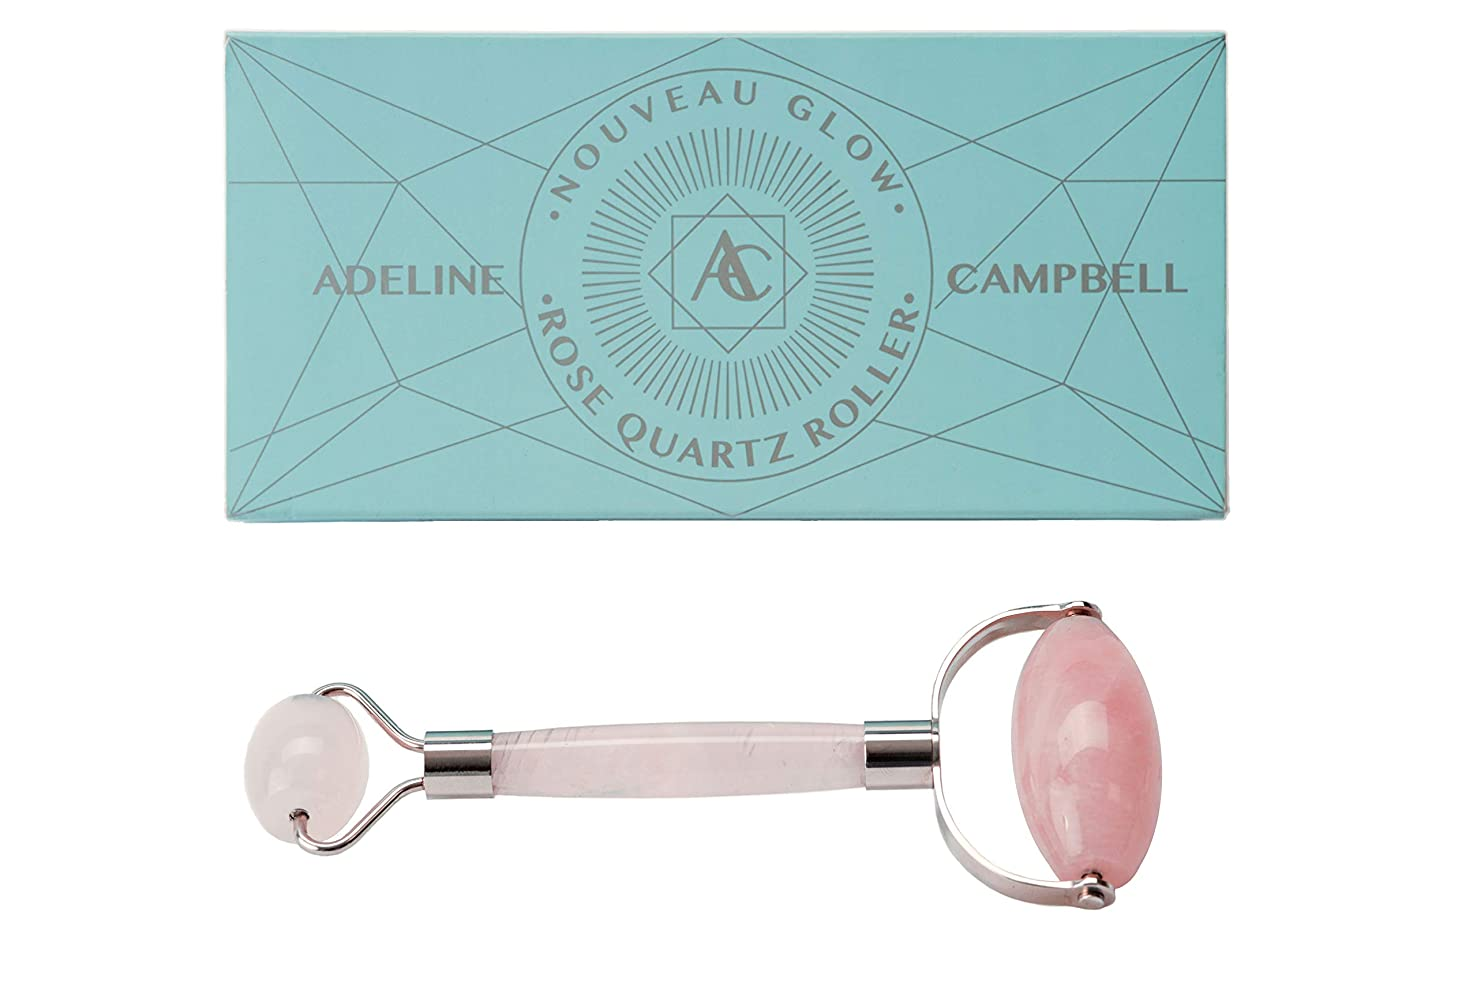 Rose Quartz Face Roller   Highest quality of any jade roller or quartz roller on the market   Use to massage face, depuff and roll eyes   Stainless steel frame will not rust